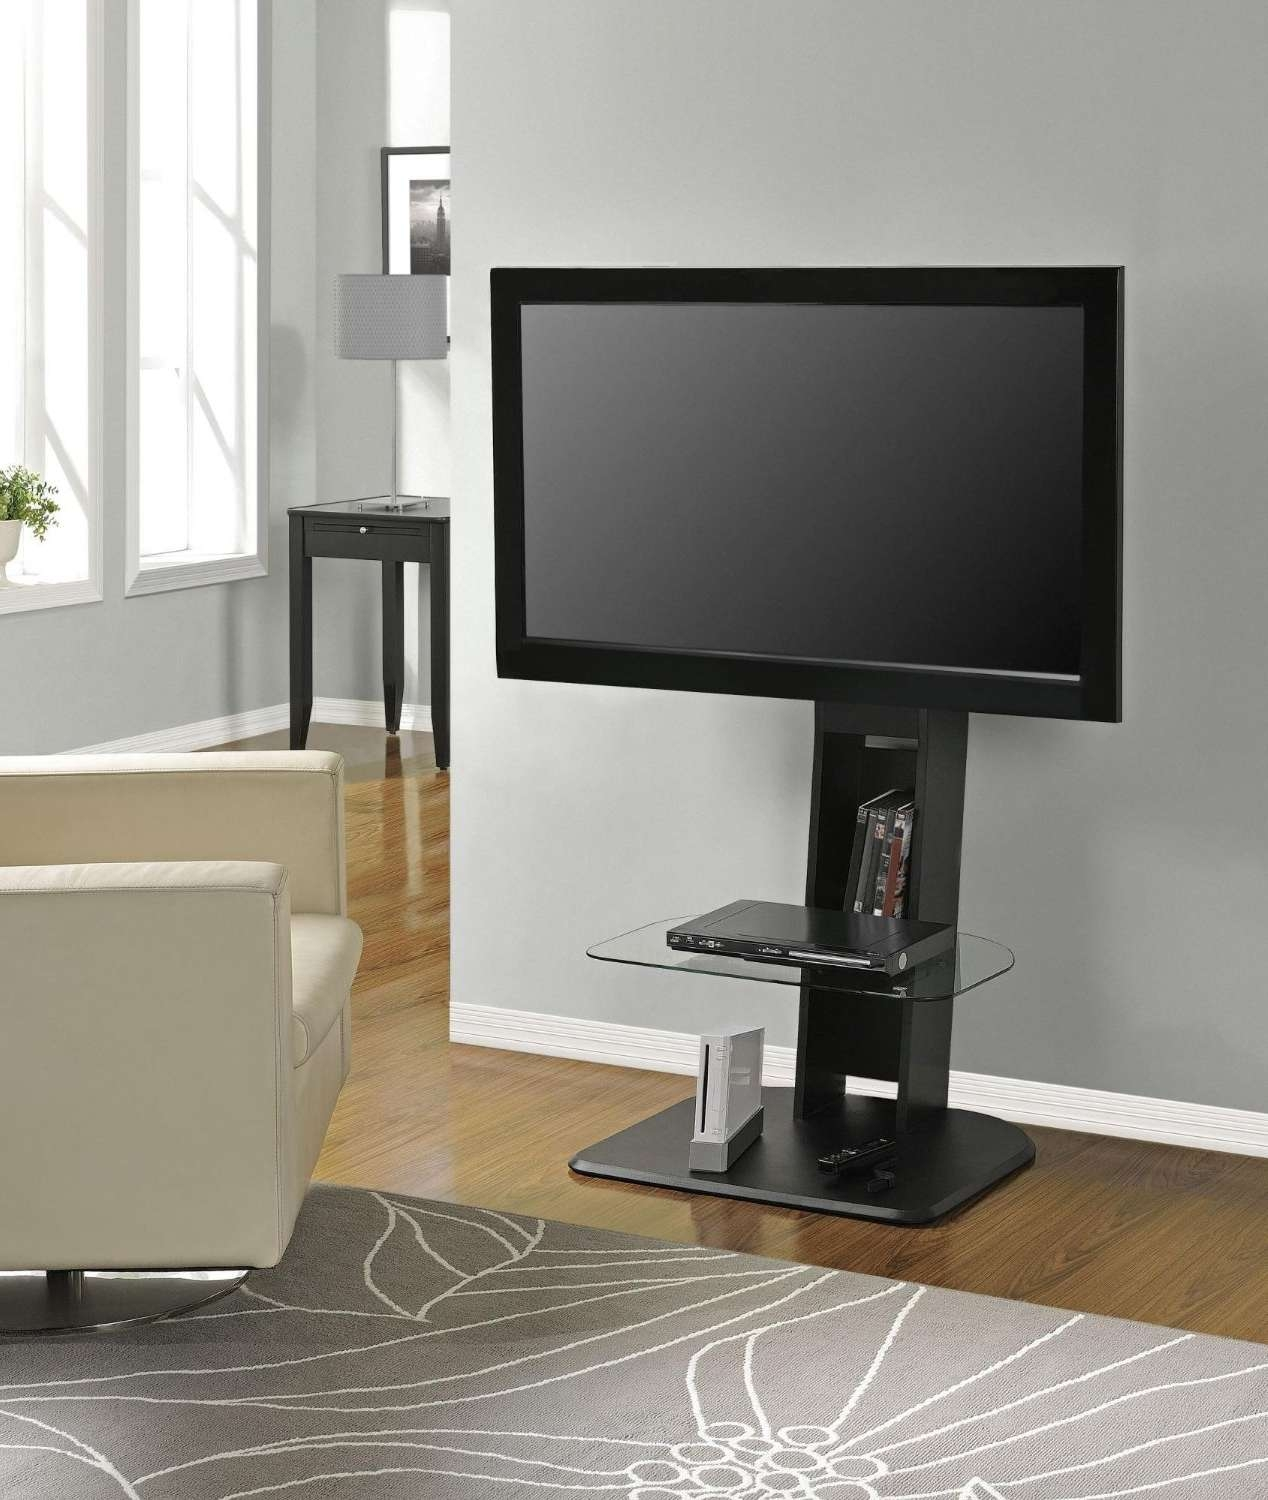 Tv : Small Tv Stands On Wheels Perfect Small White Tv Stand On Throughout Small Tv Stands On Wheels (View 16 of 20)